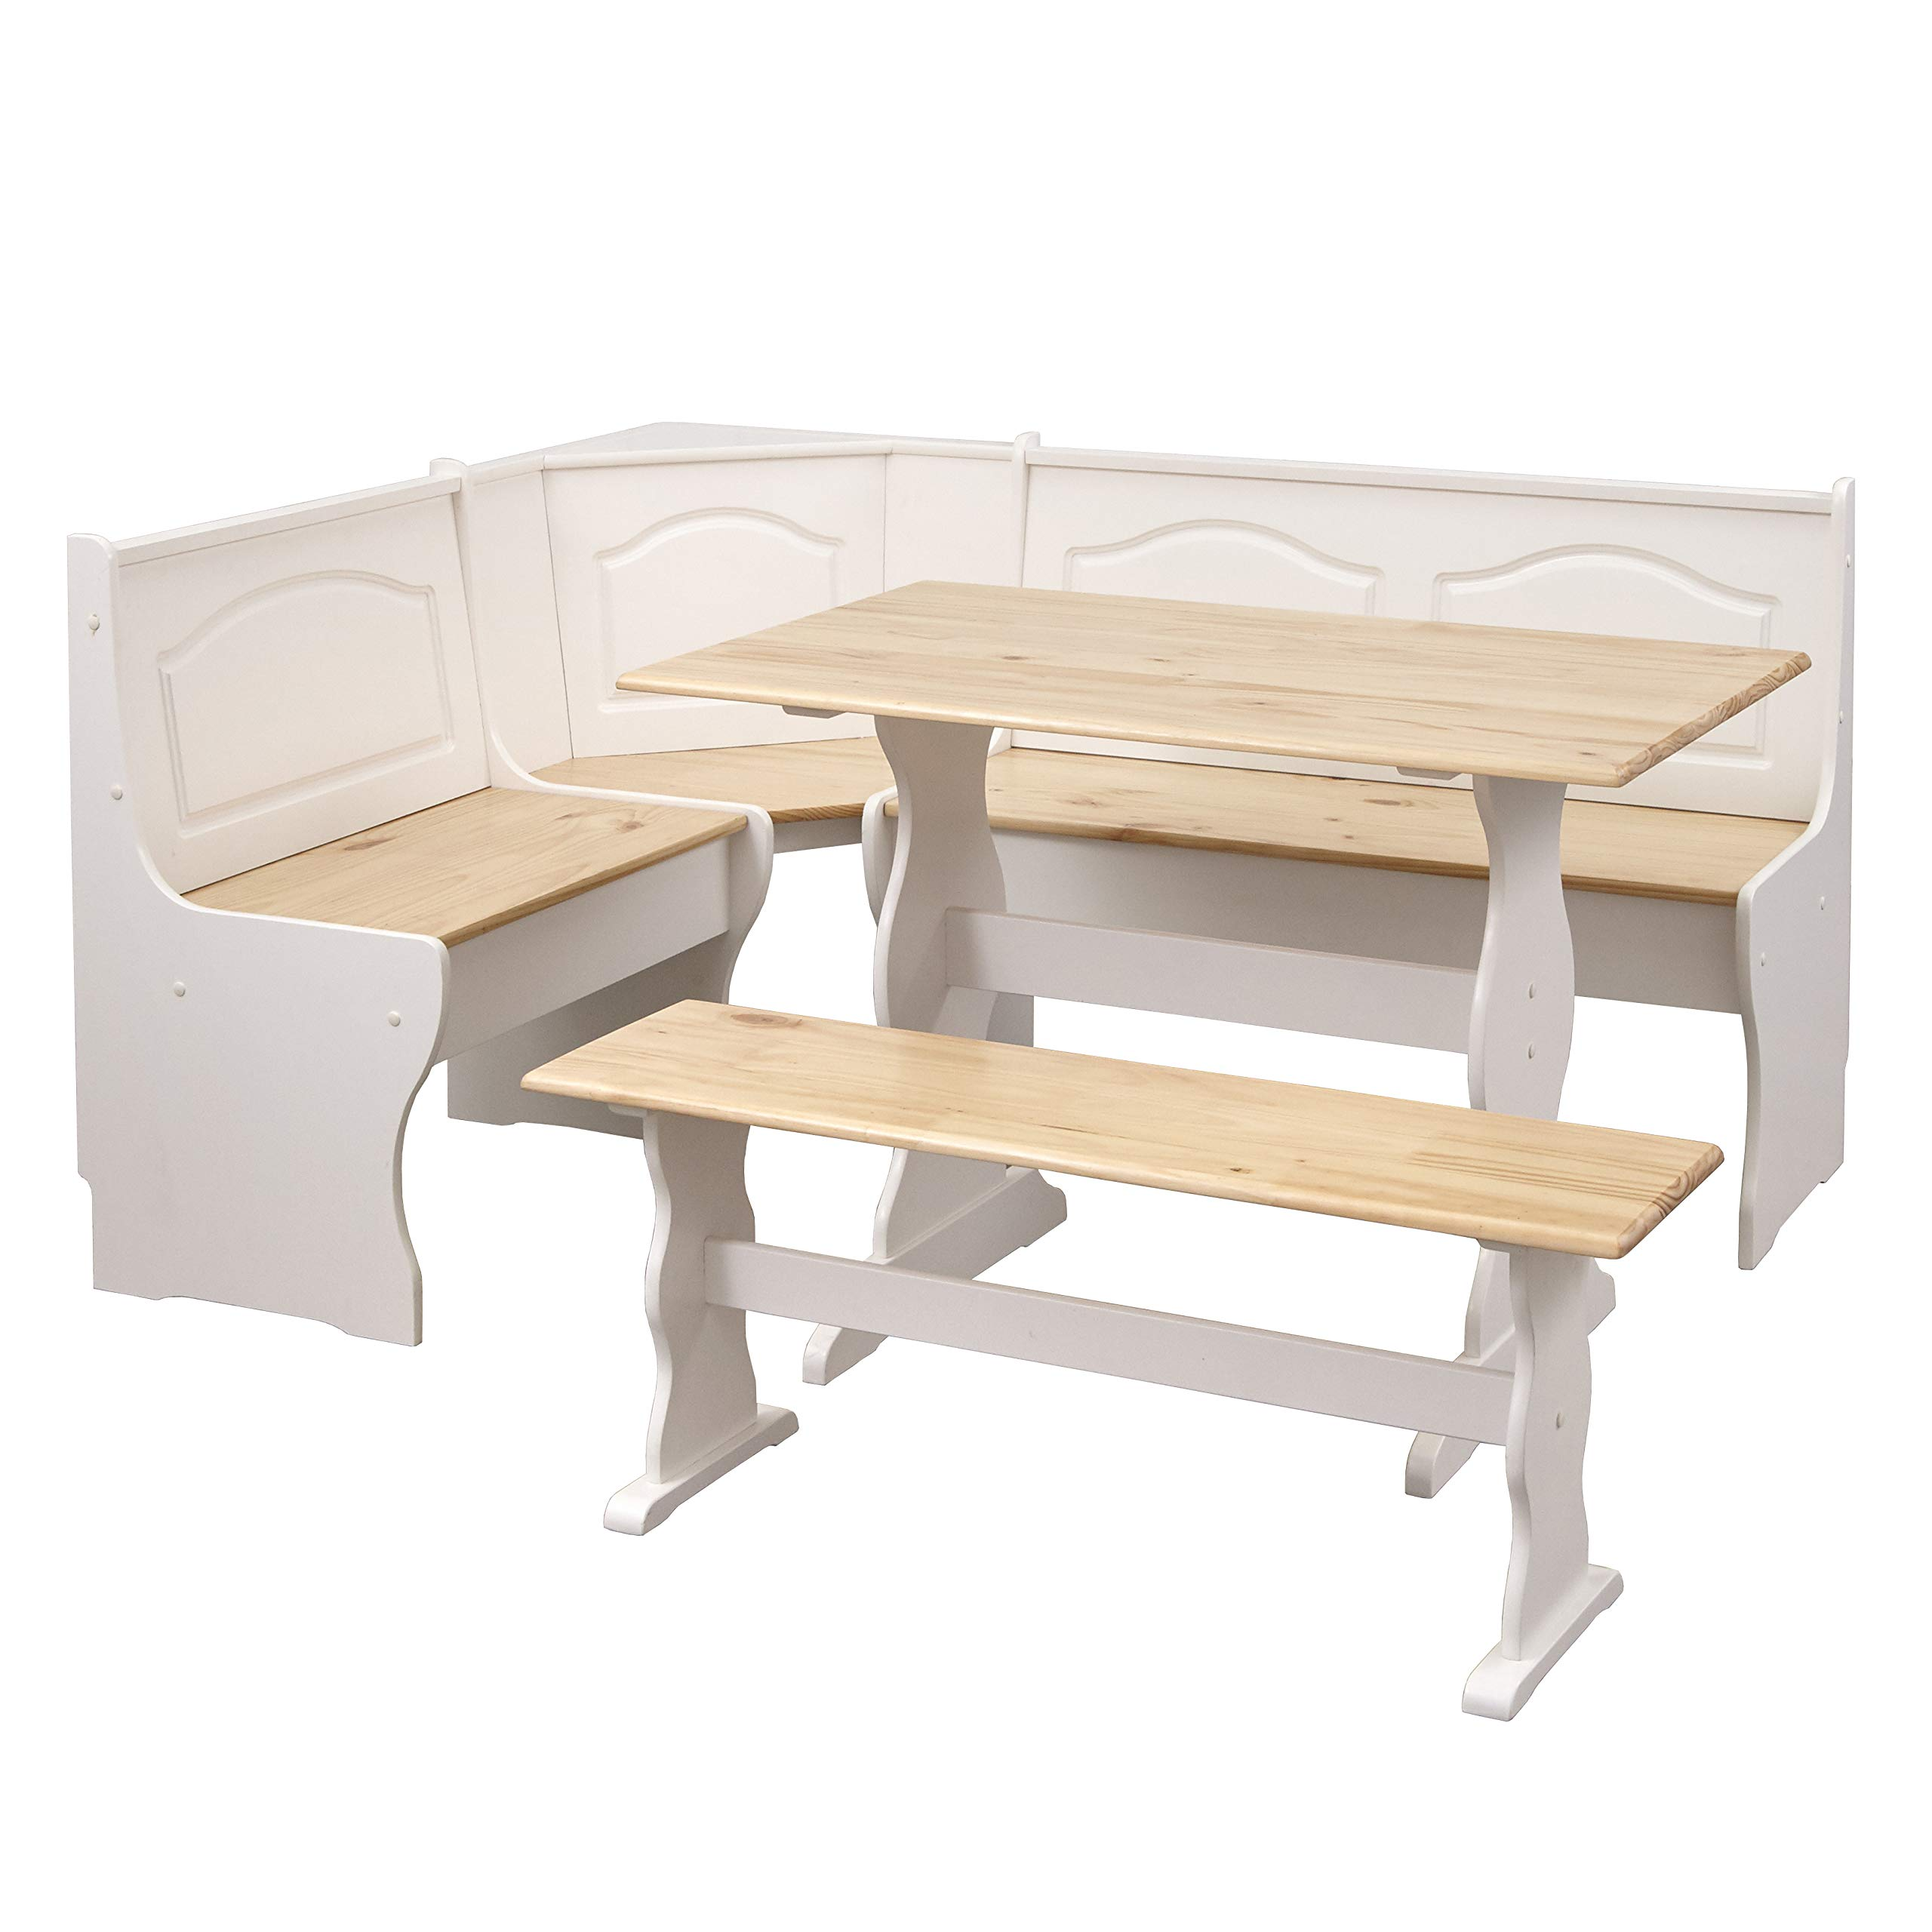 The Mezzanine Shoppe Knox Modern 3 Piece Corner Dining Nook Set, Natural/White by The Mezzanine Shoppe